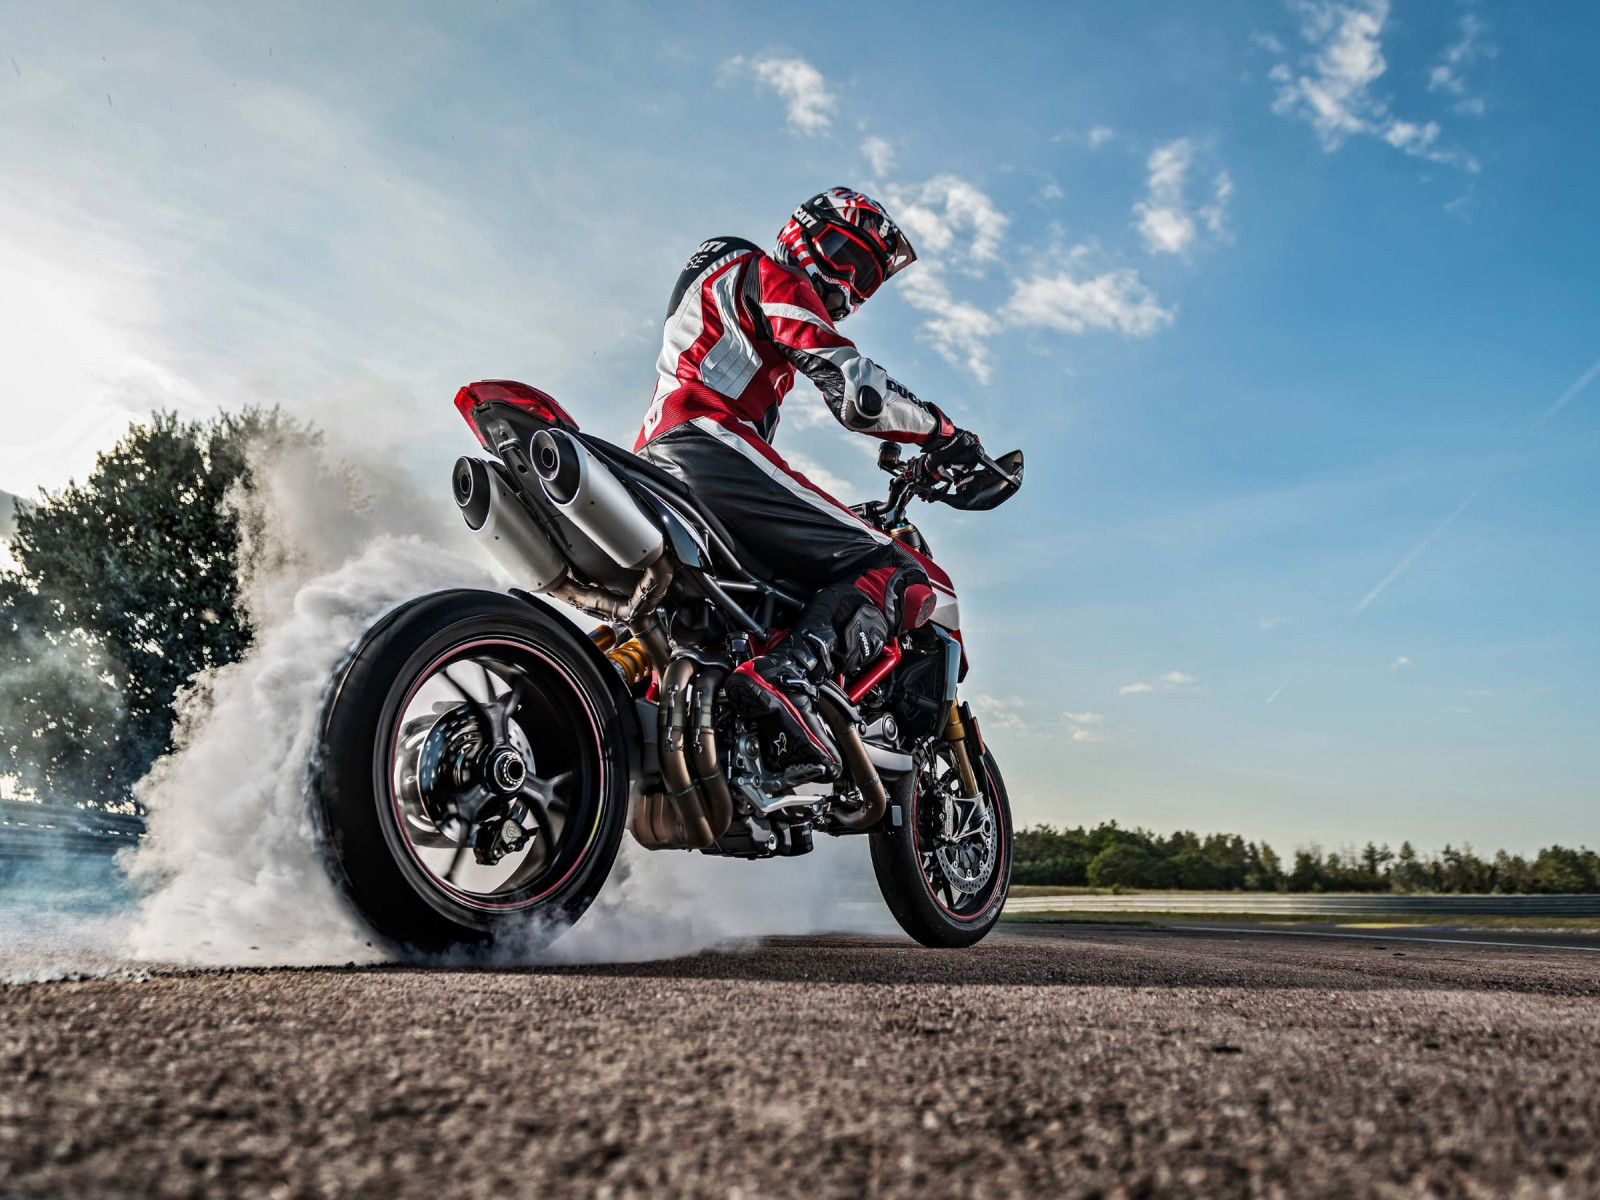 Ducati Hypermotard 950 wallpaper 1600x1200